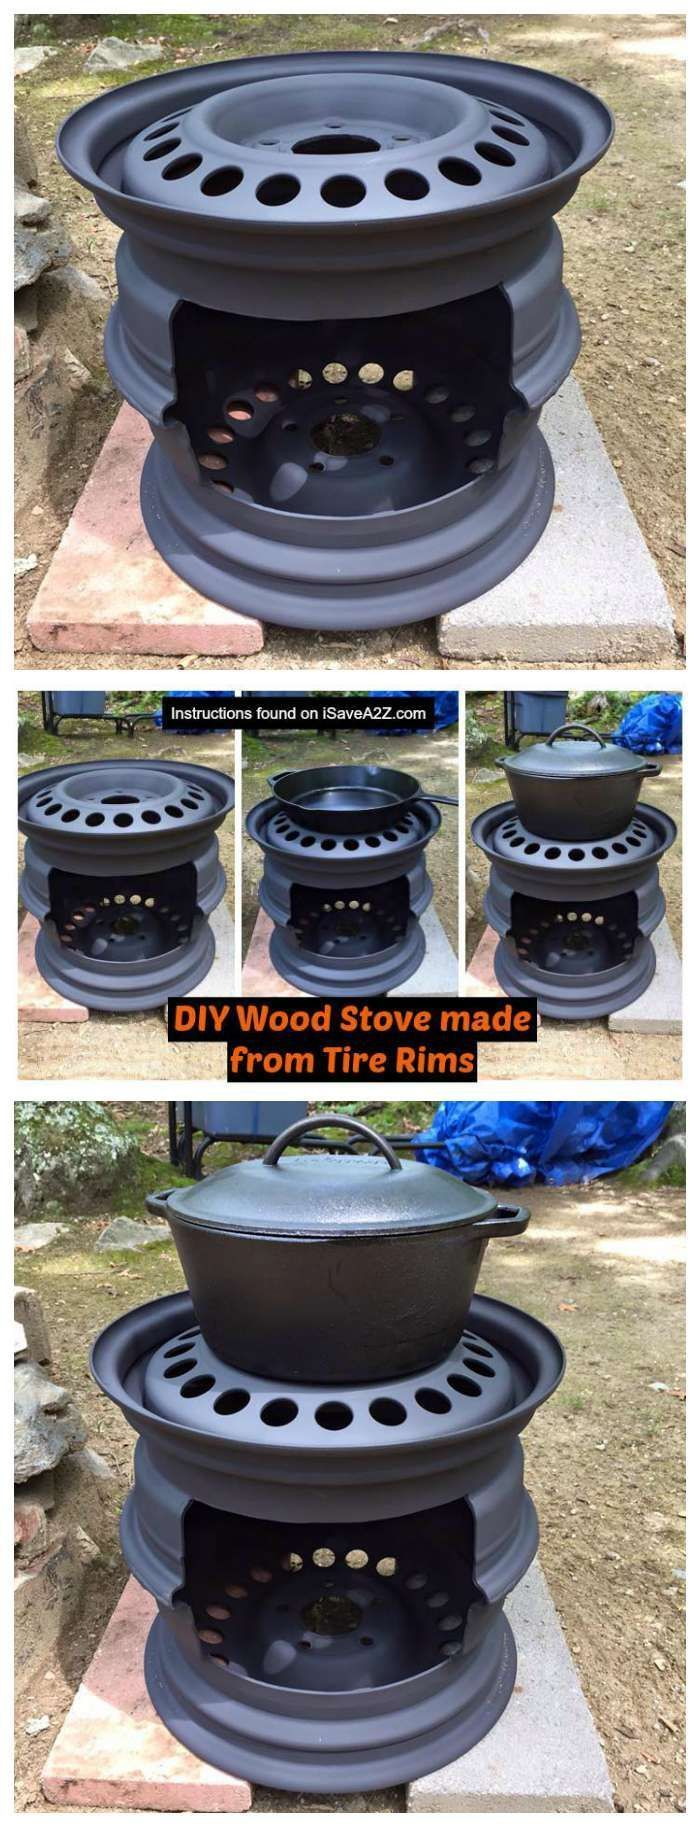 Check out this diy wood stove made from tire rims how cool is that to